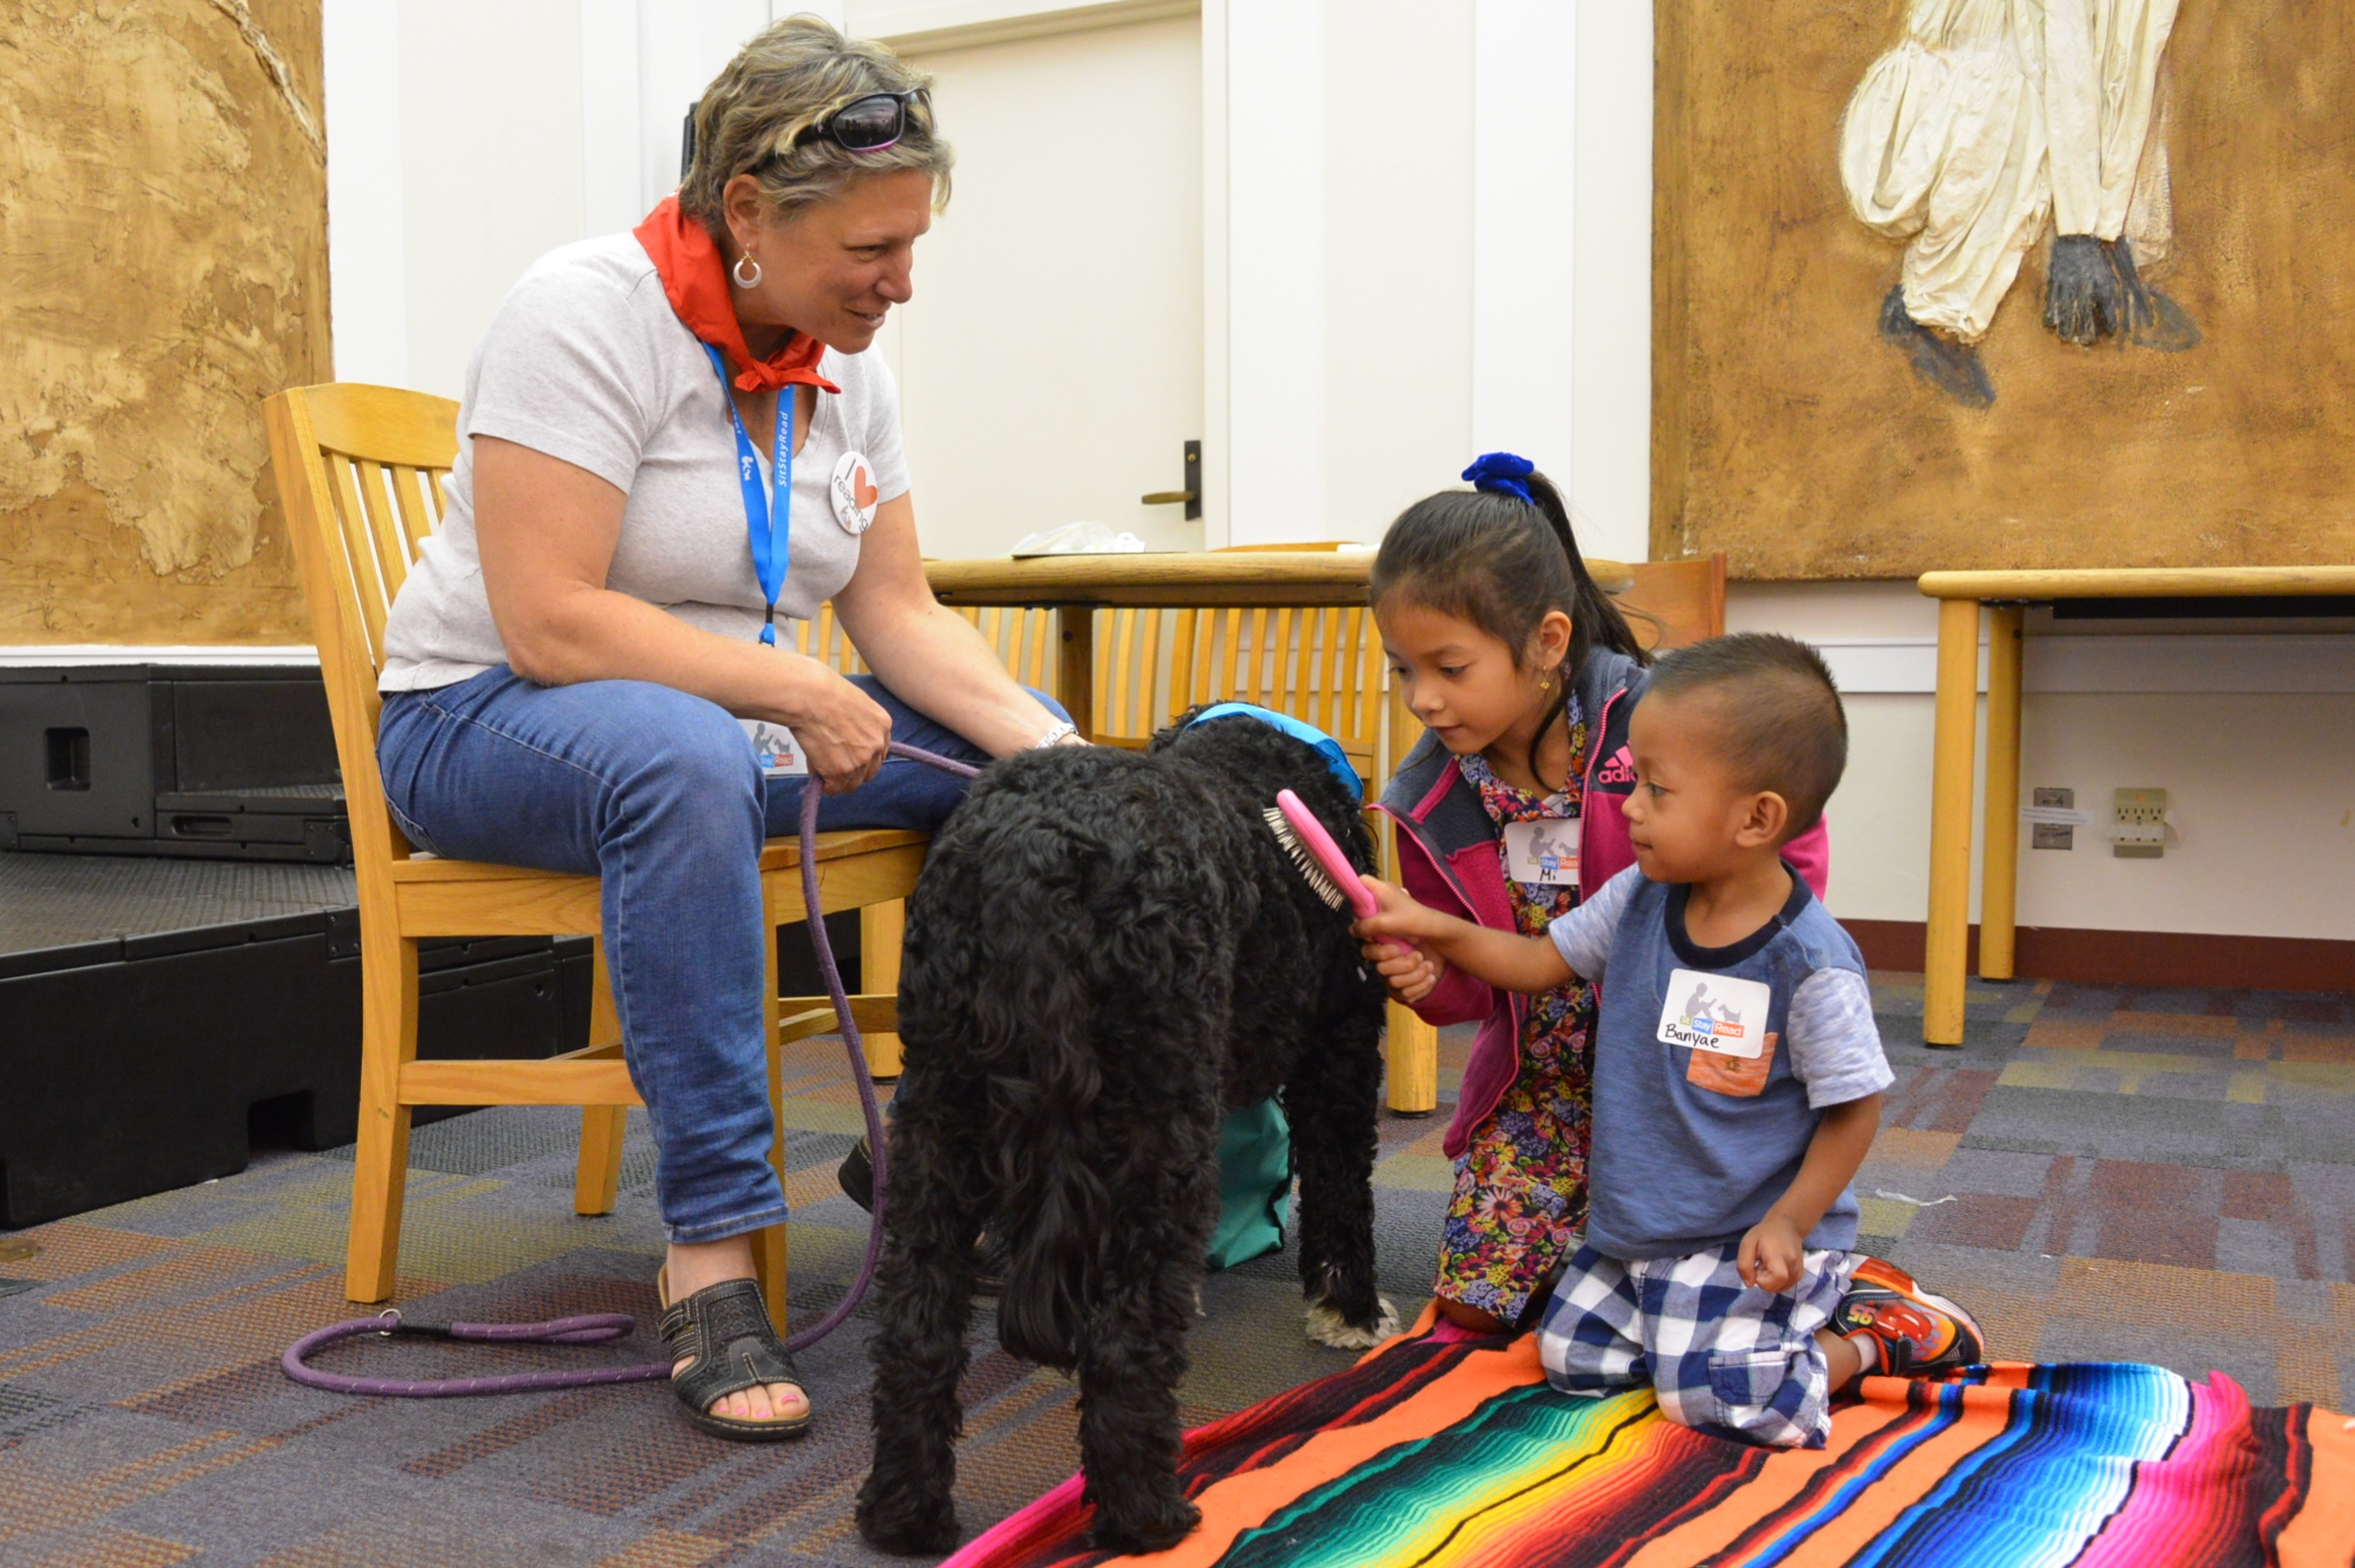 Students Bayne and Mi learn more about brushing Macy from Dog Team volunteer Sue.